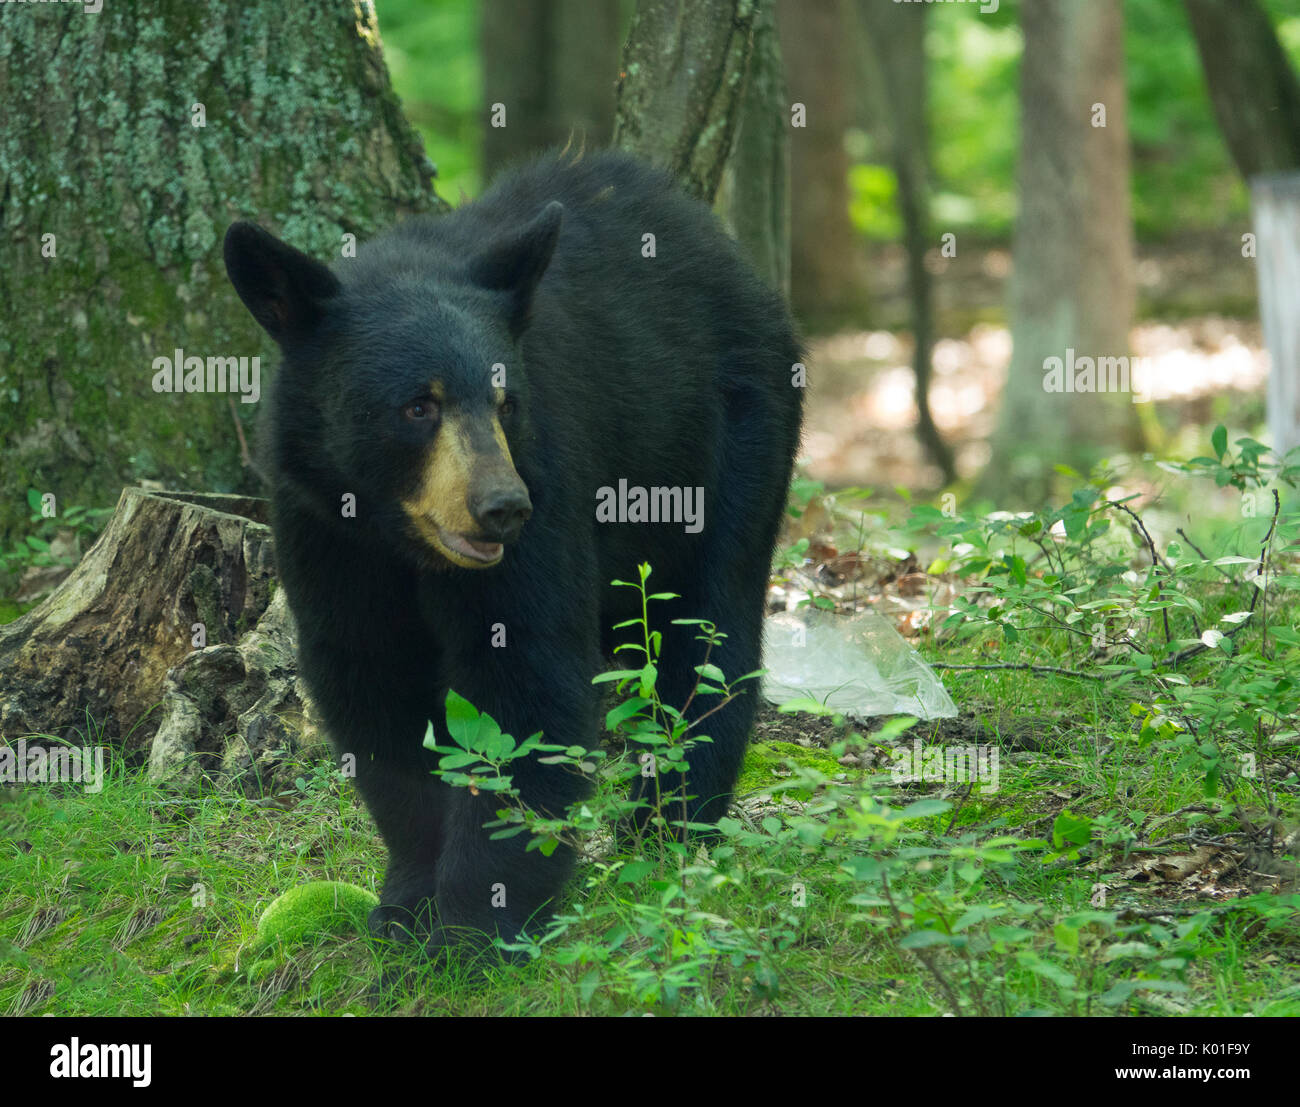 Black bear on the look-out for intruders - Stock Image